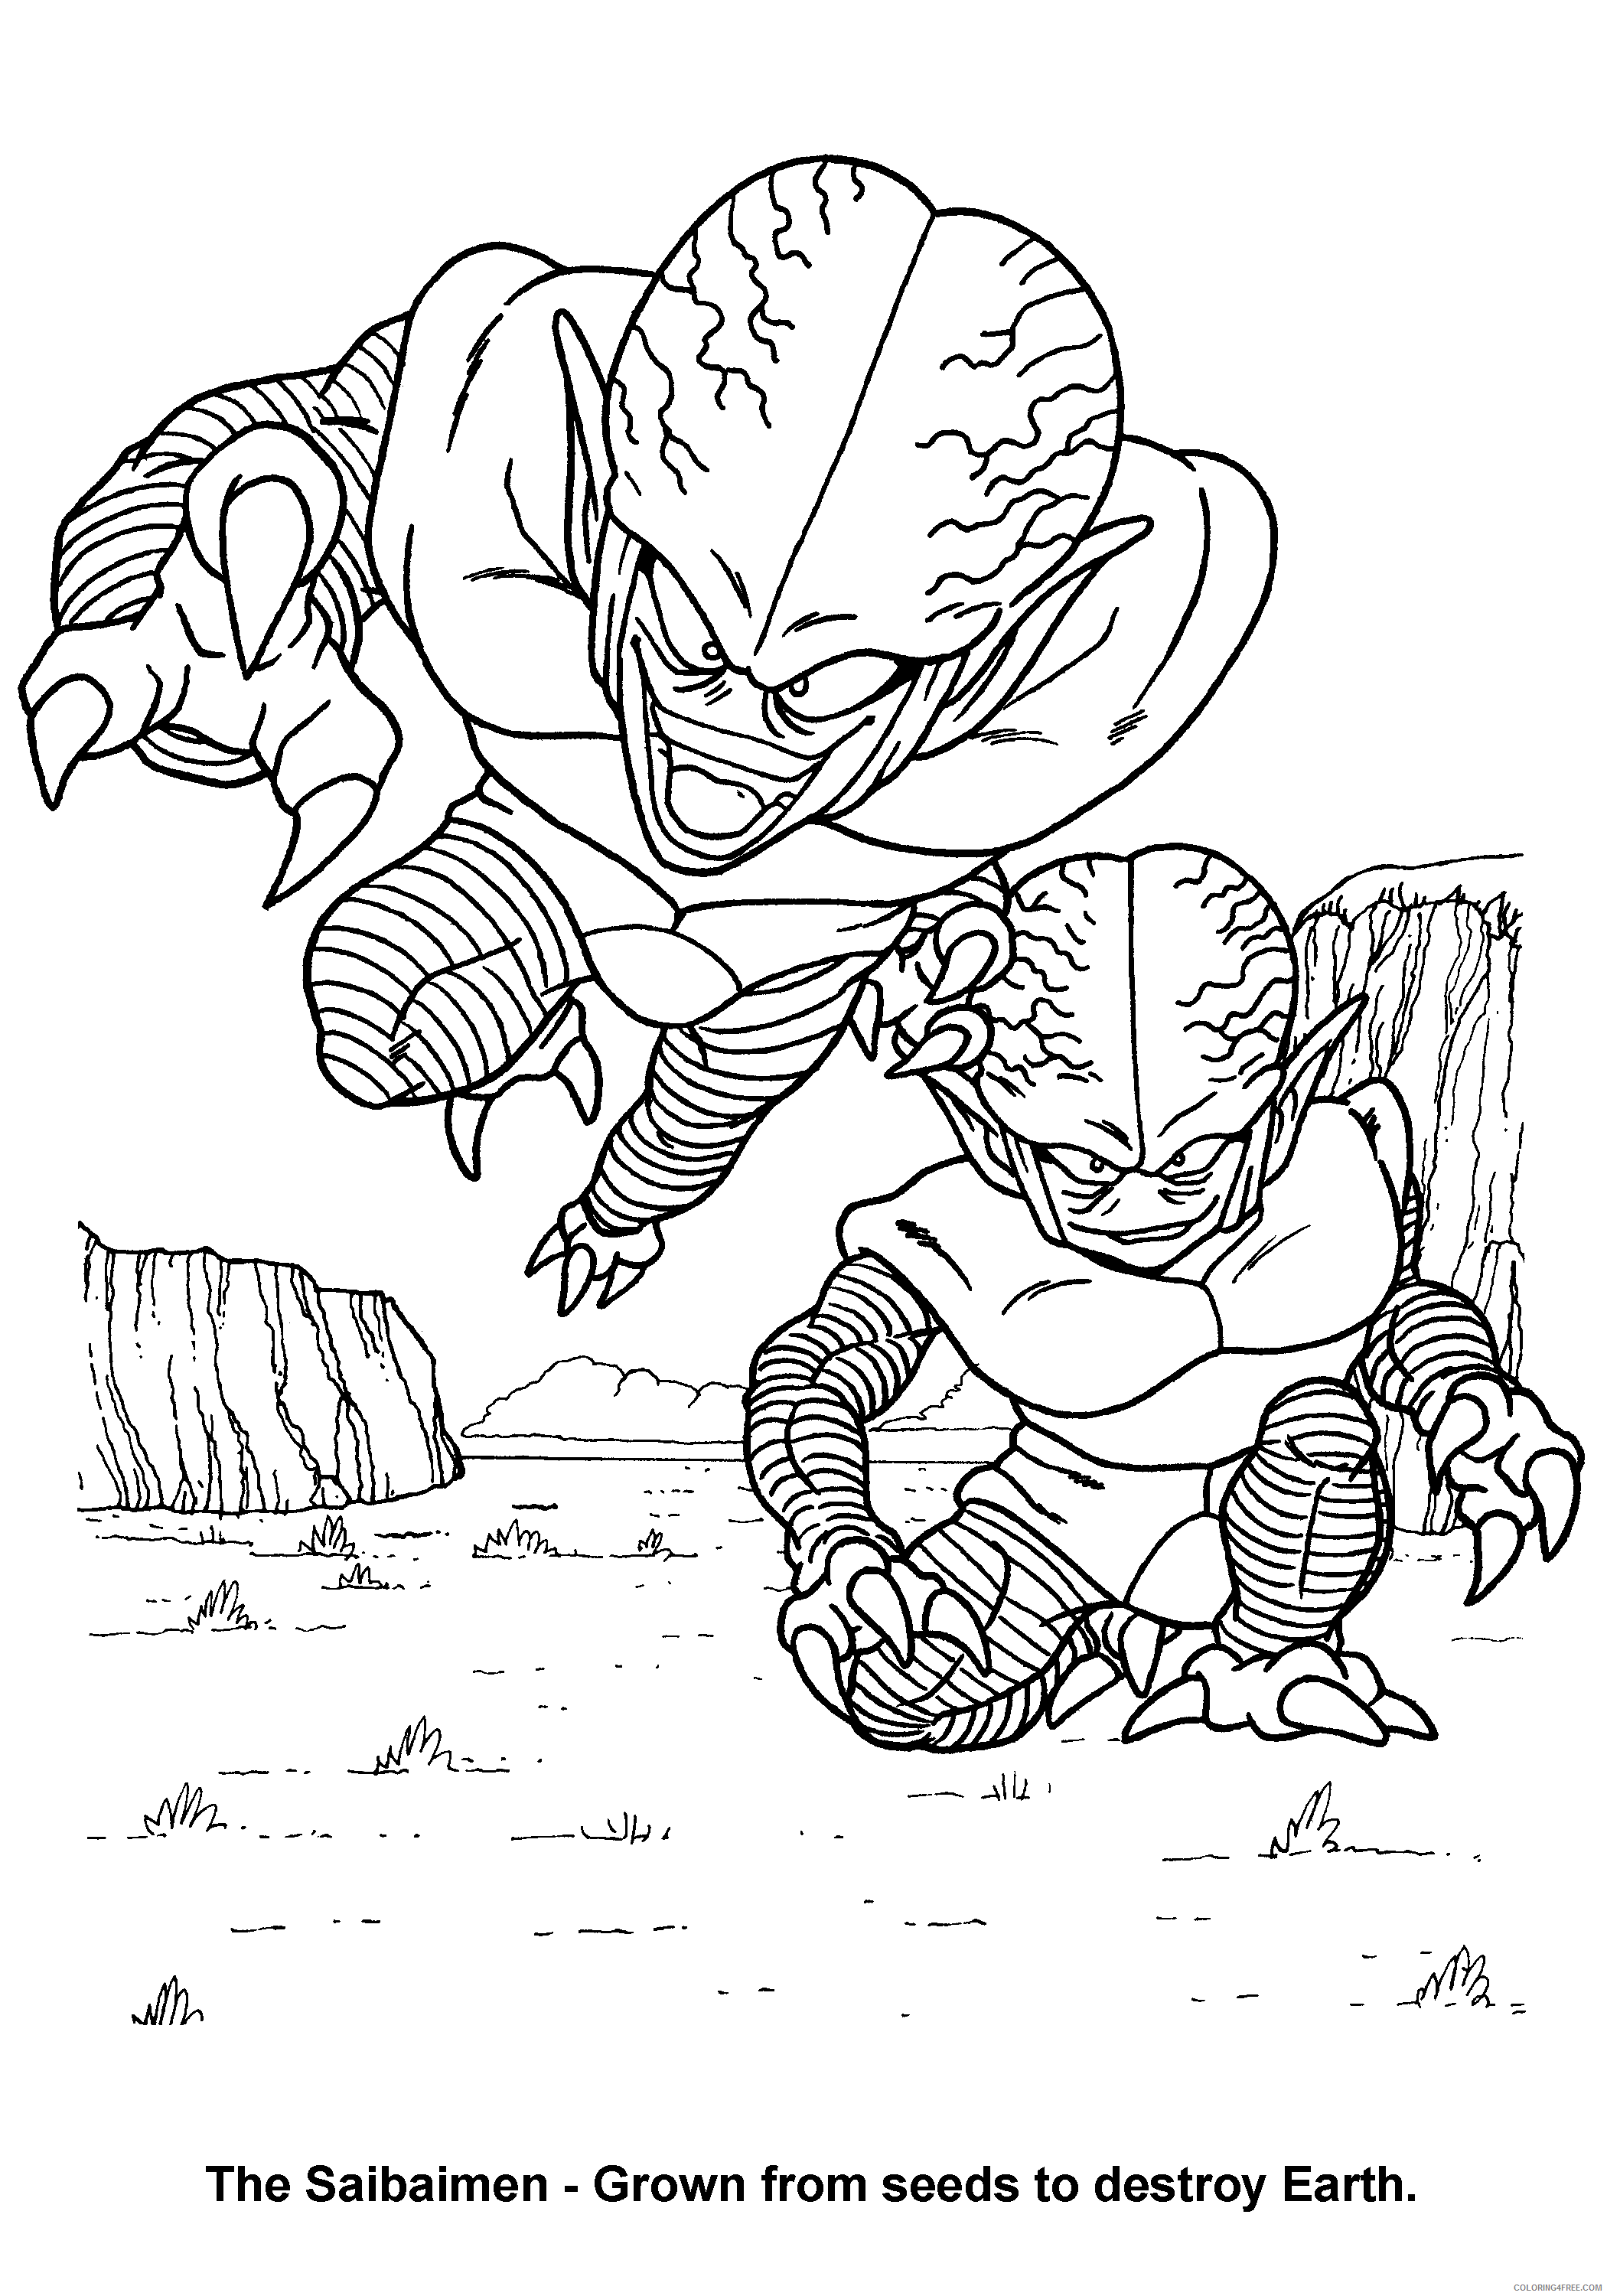 063 dragon ball z the saibaimen grown from seeds to destroy earth Printable Coloring4free